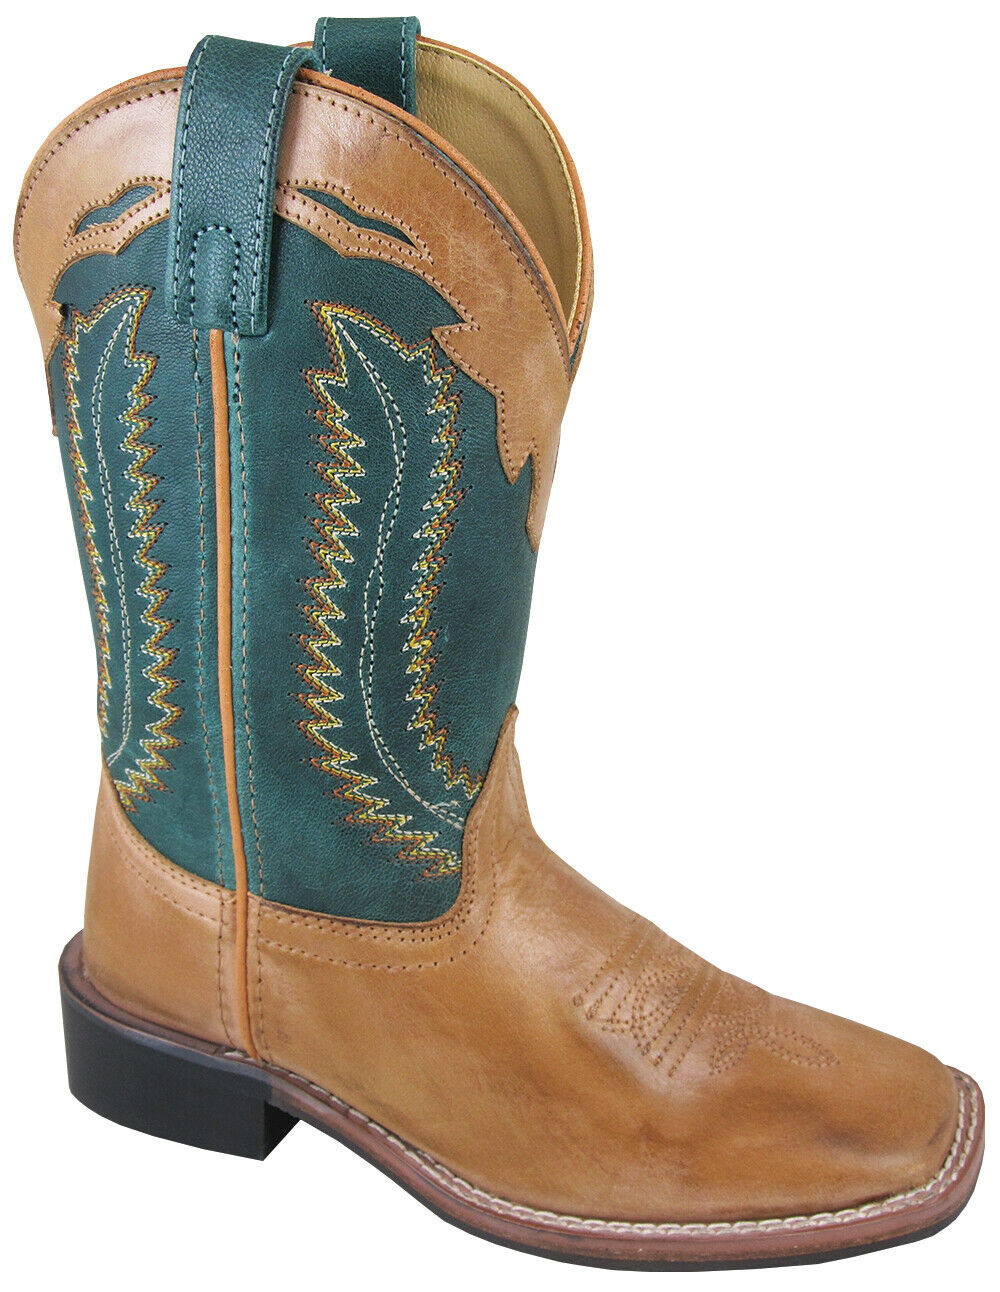 Smoky Mountain  ldrens  Clint Western Cowboy Boots Leather Square Toe Tan Green  popular